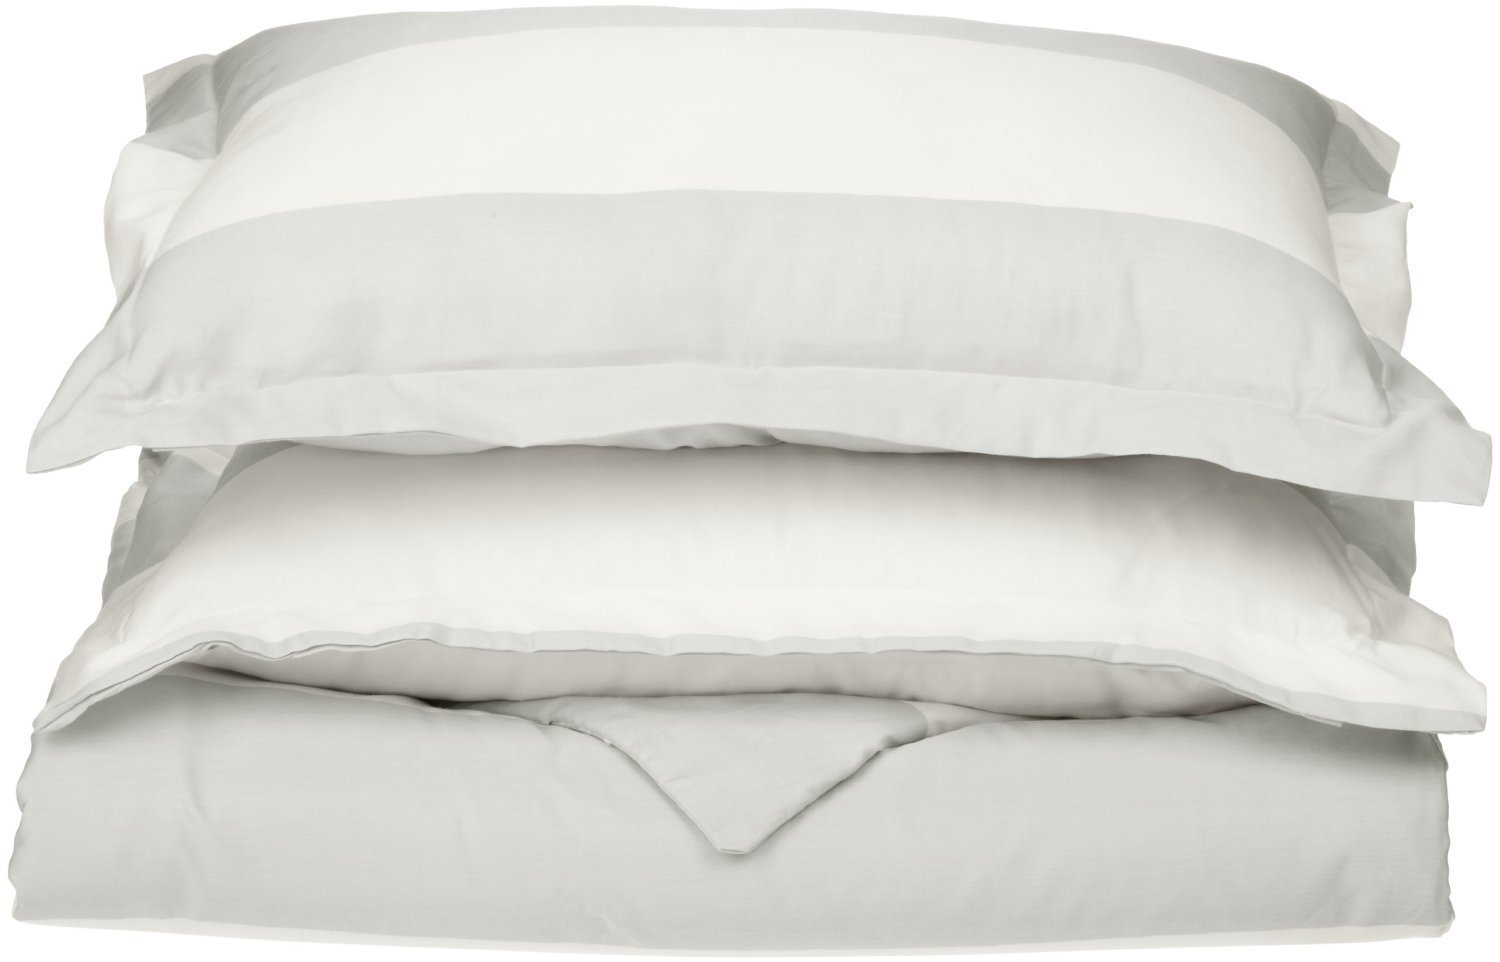 GoLinens: Luxury WHITE Tropical Cabana 600 Thread Count Cotton Wrinkle Free ALL YEAR round Down Alternative Comforter set with ...